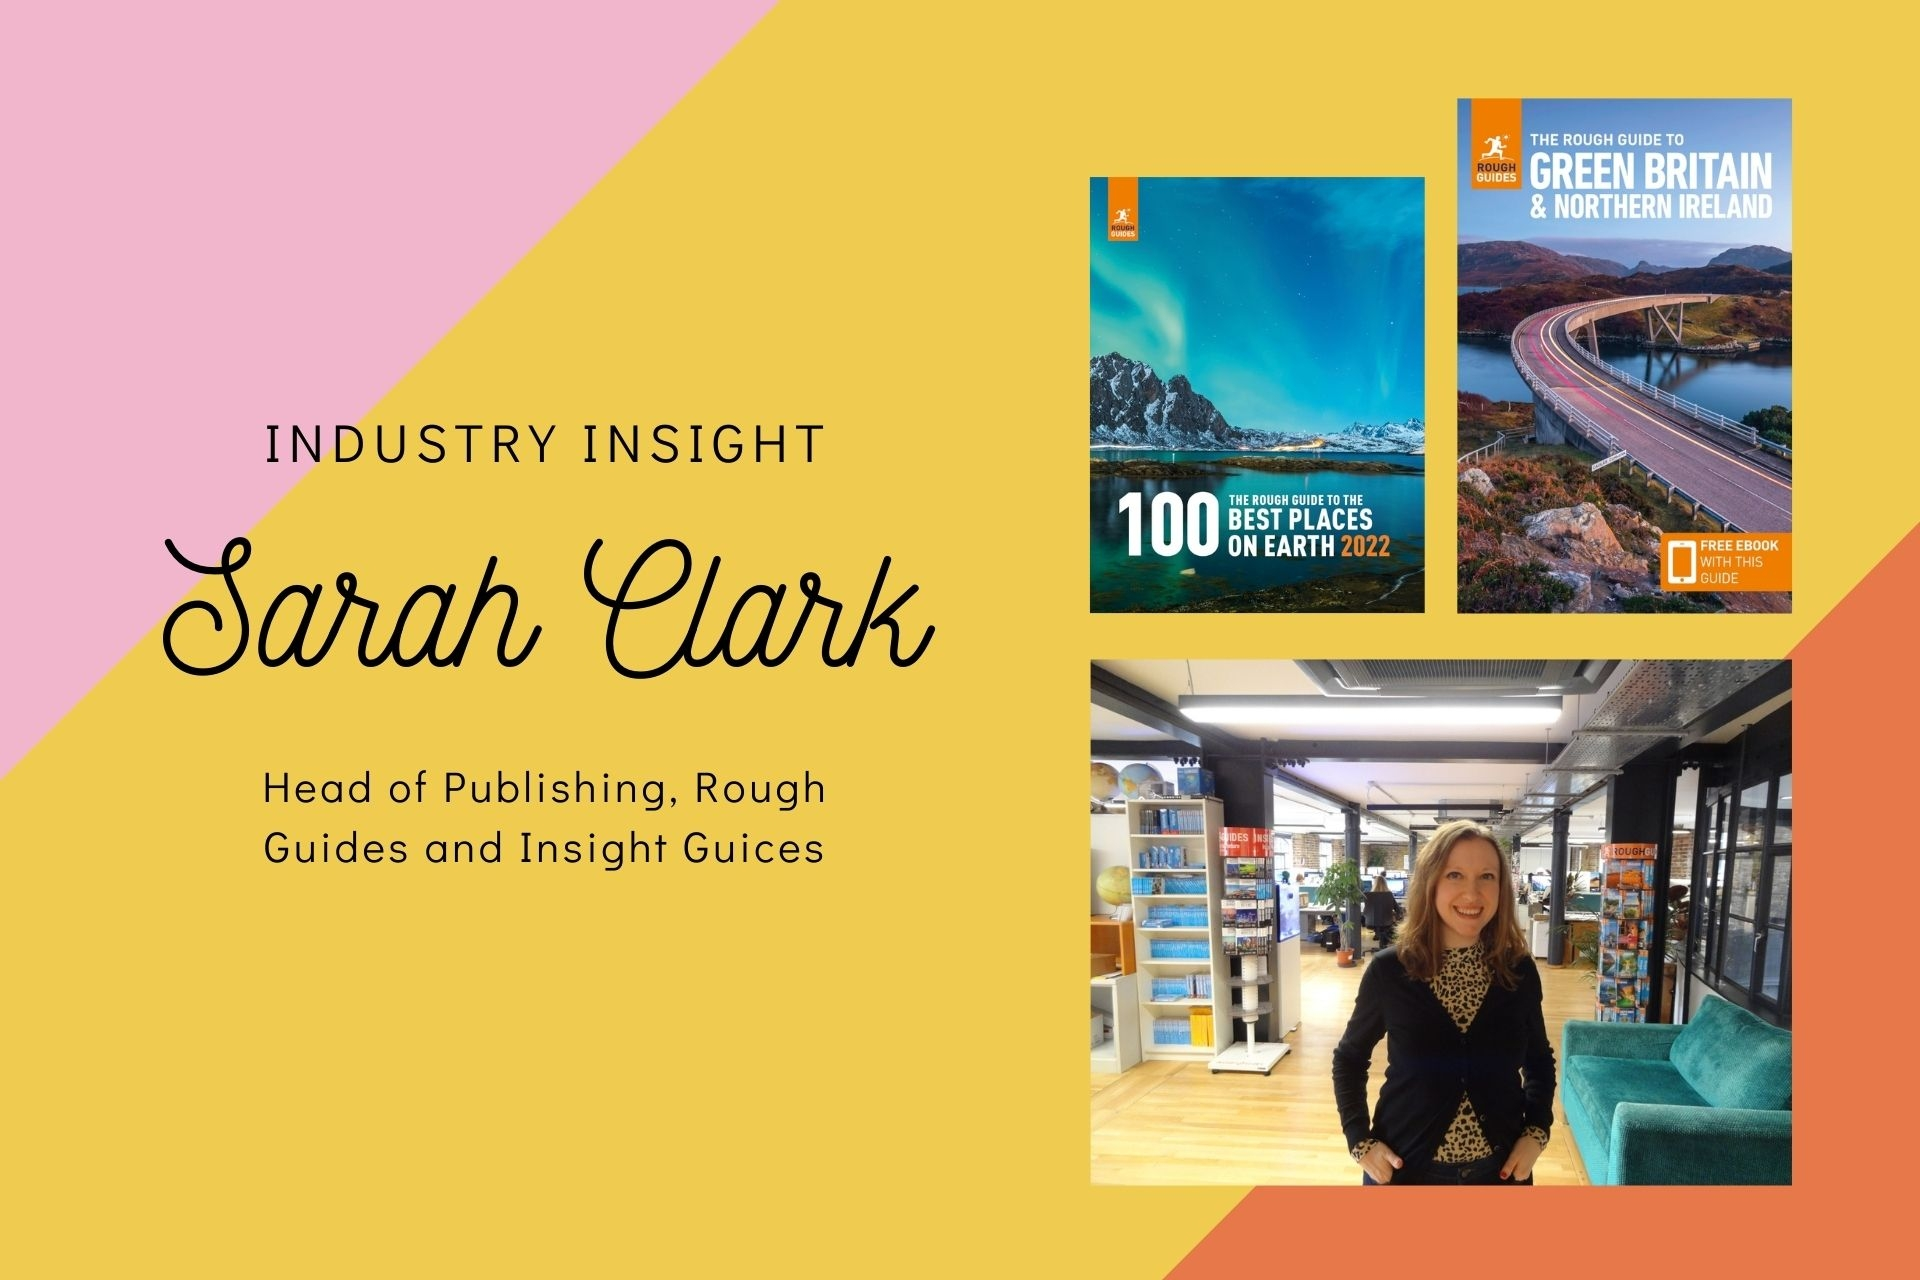 Industry Insight: Q&A with Sarah Clark (Head of Publishing for Rough Guides and Insight Guides)